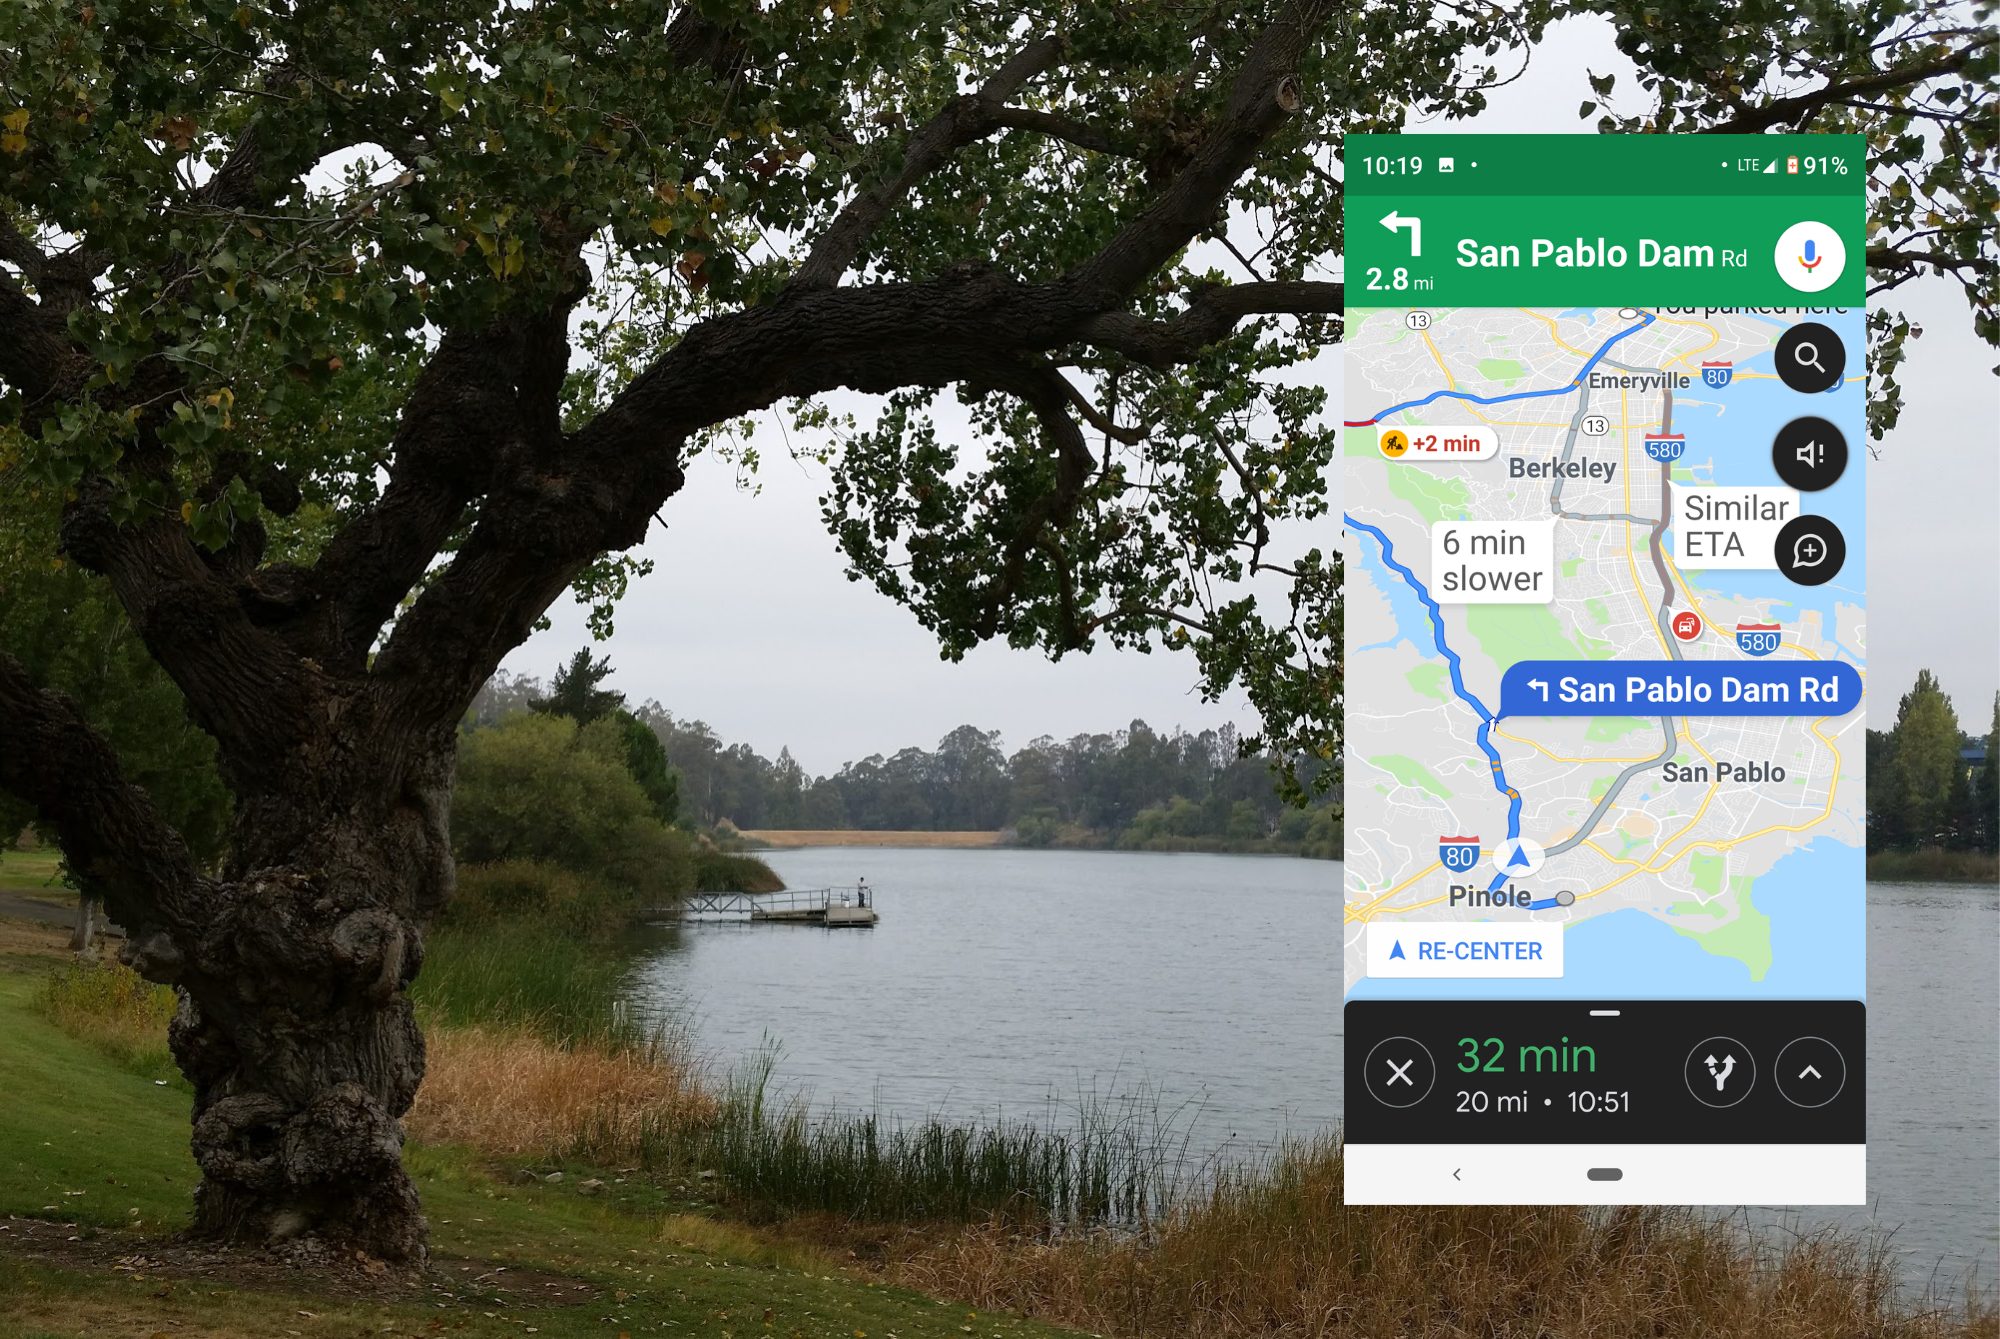 Screenshot of Google Maps showing directions is on one side of a scenic picture of a lake bank